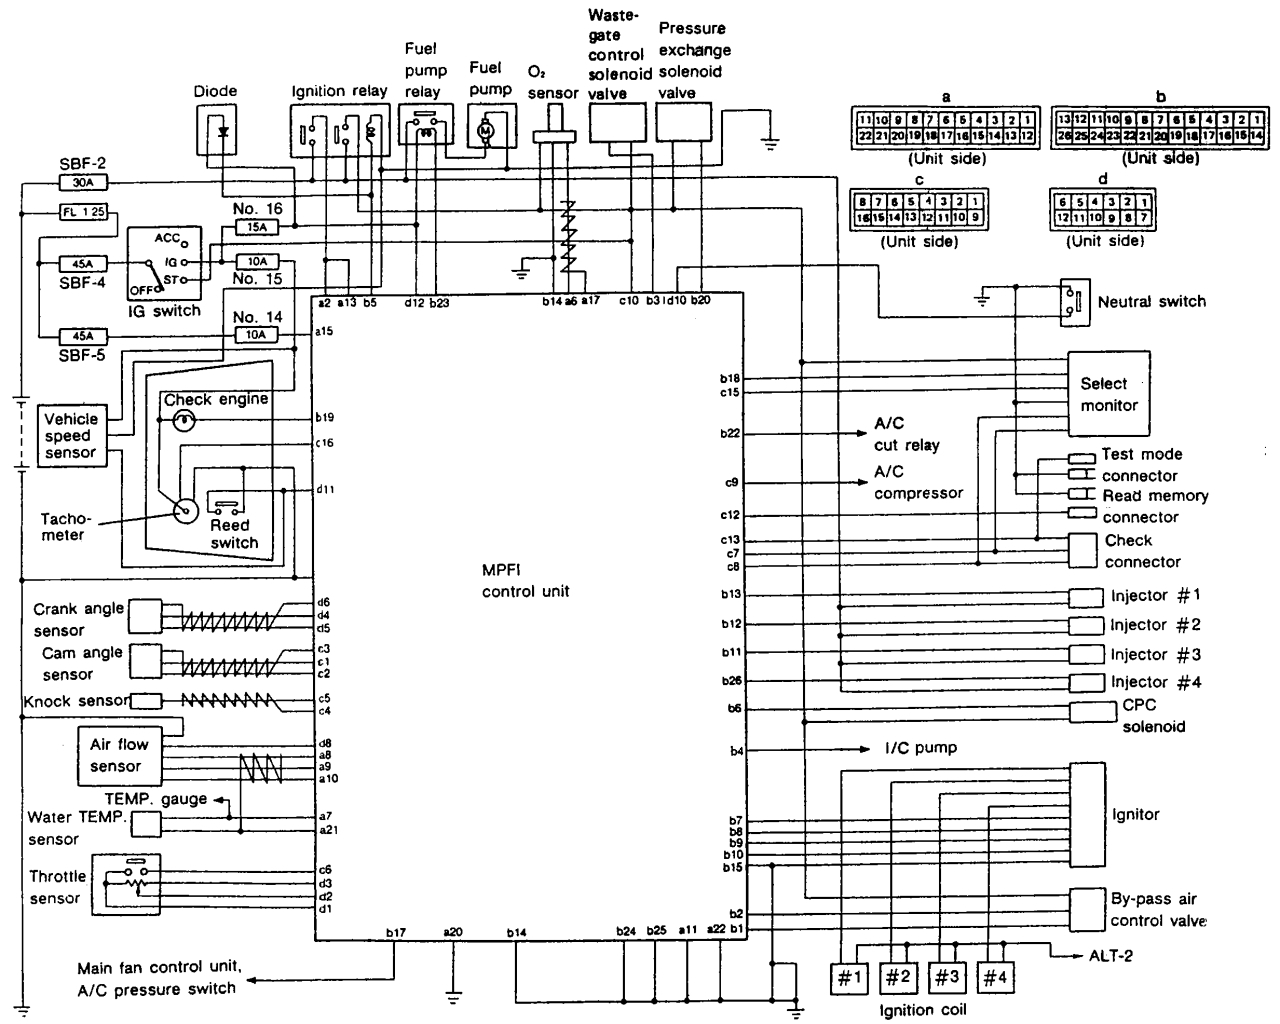 2006 jeep liberty wiring diagram Download-jeep liberty wiring diagrams Download Excellent 2002 Jeep Liberty Radio Wiring Diagram Best Image 2 6-j